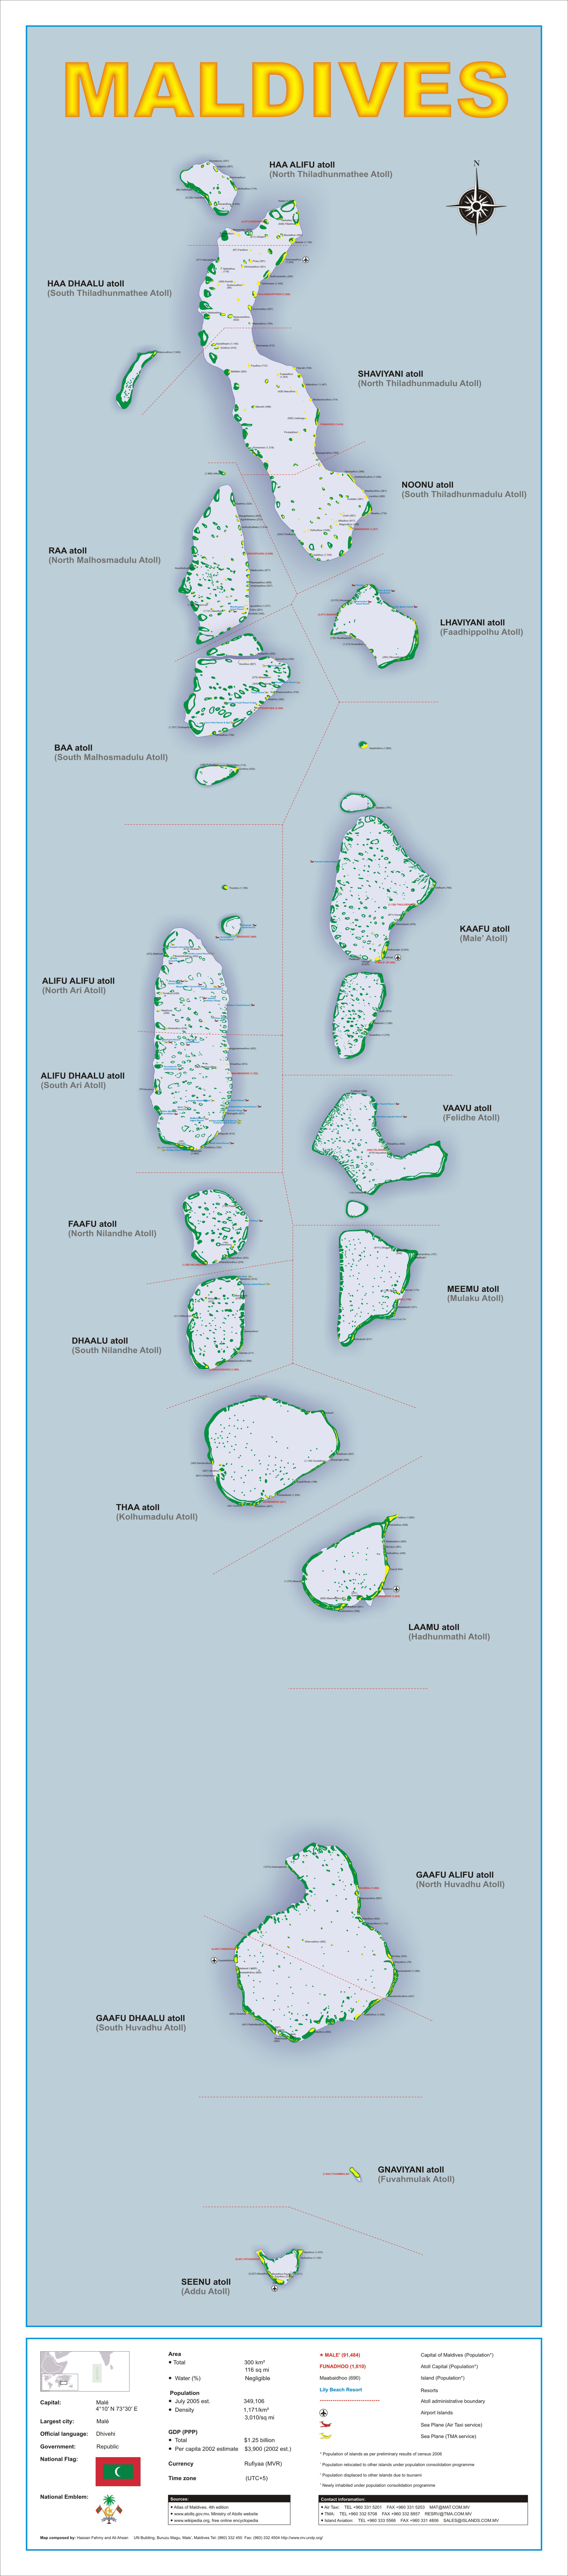 Large detailed administrative map of maldives maldives large large detailed administrative map of maldives maldives large detailed administrative map sciox Gallery